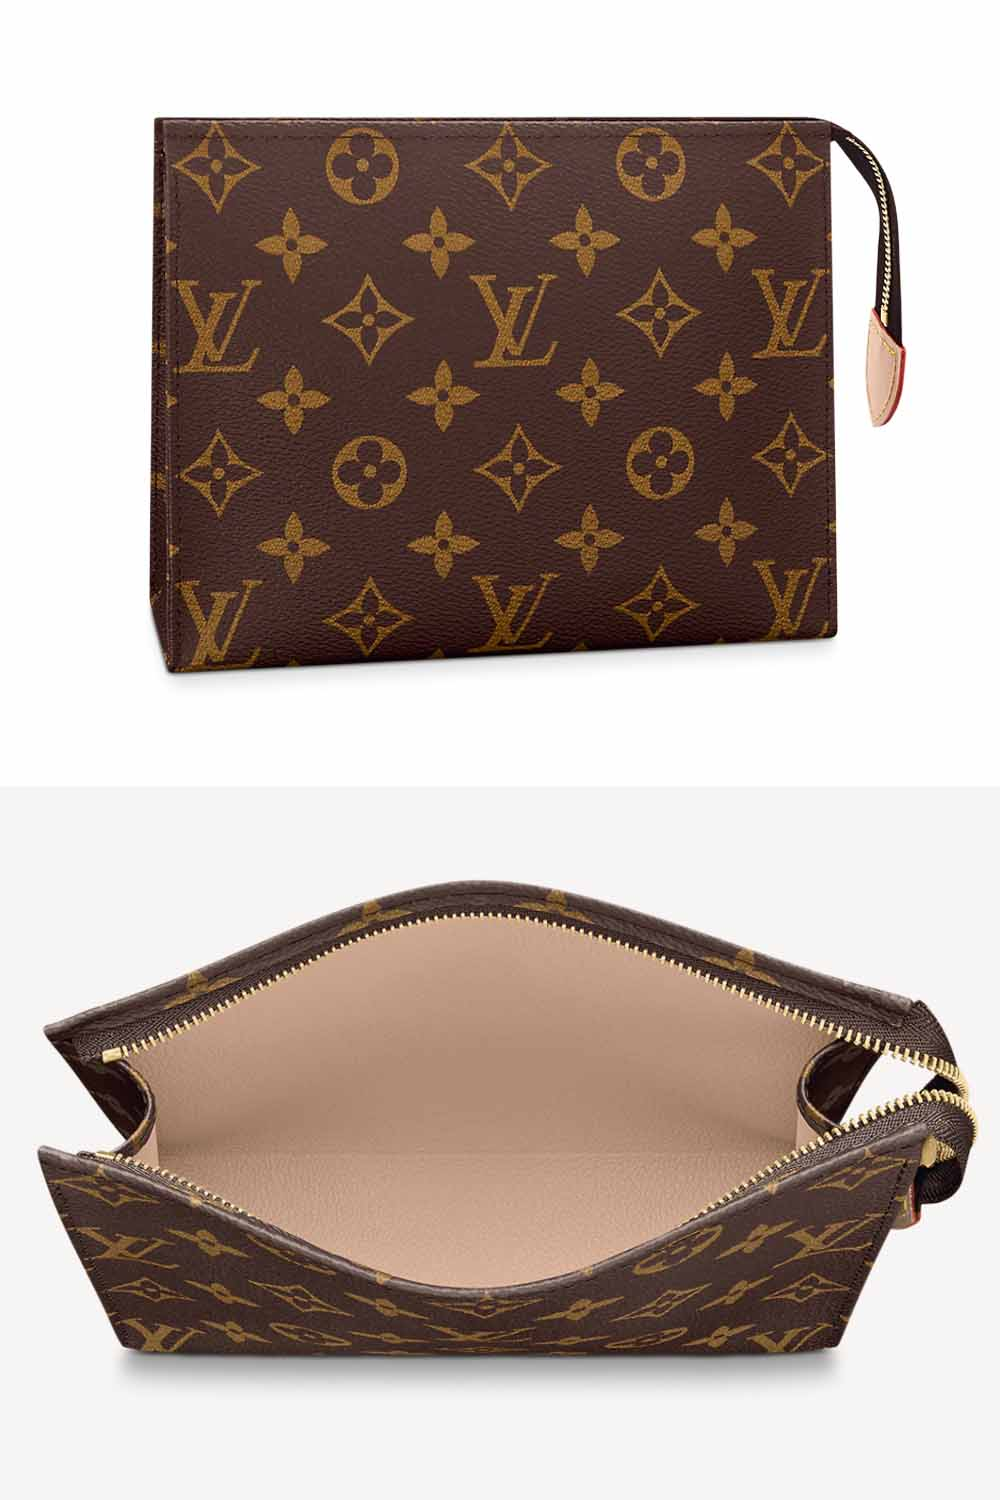 The-best-luxury-gifts-for-her-women-Louis-Vuitton-TOILETRY-POUCH-19